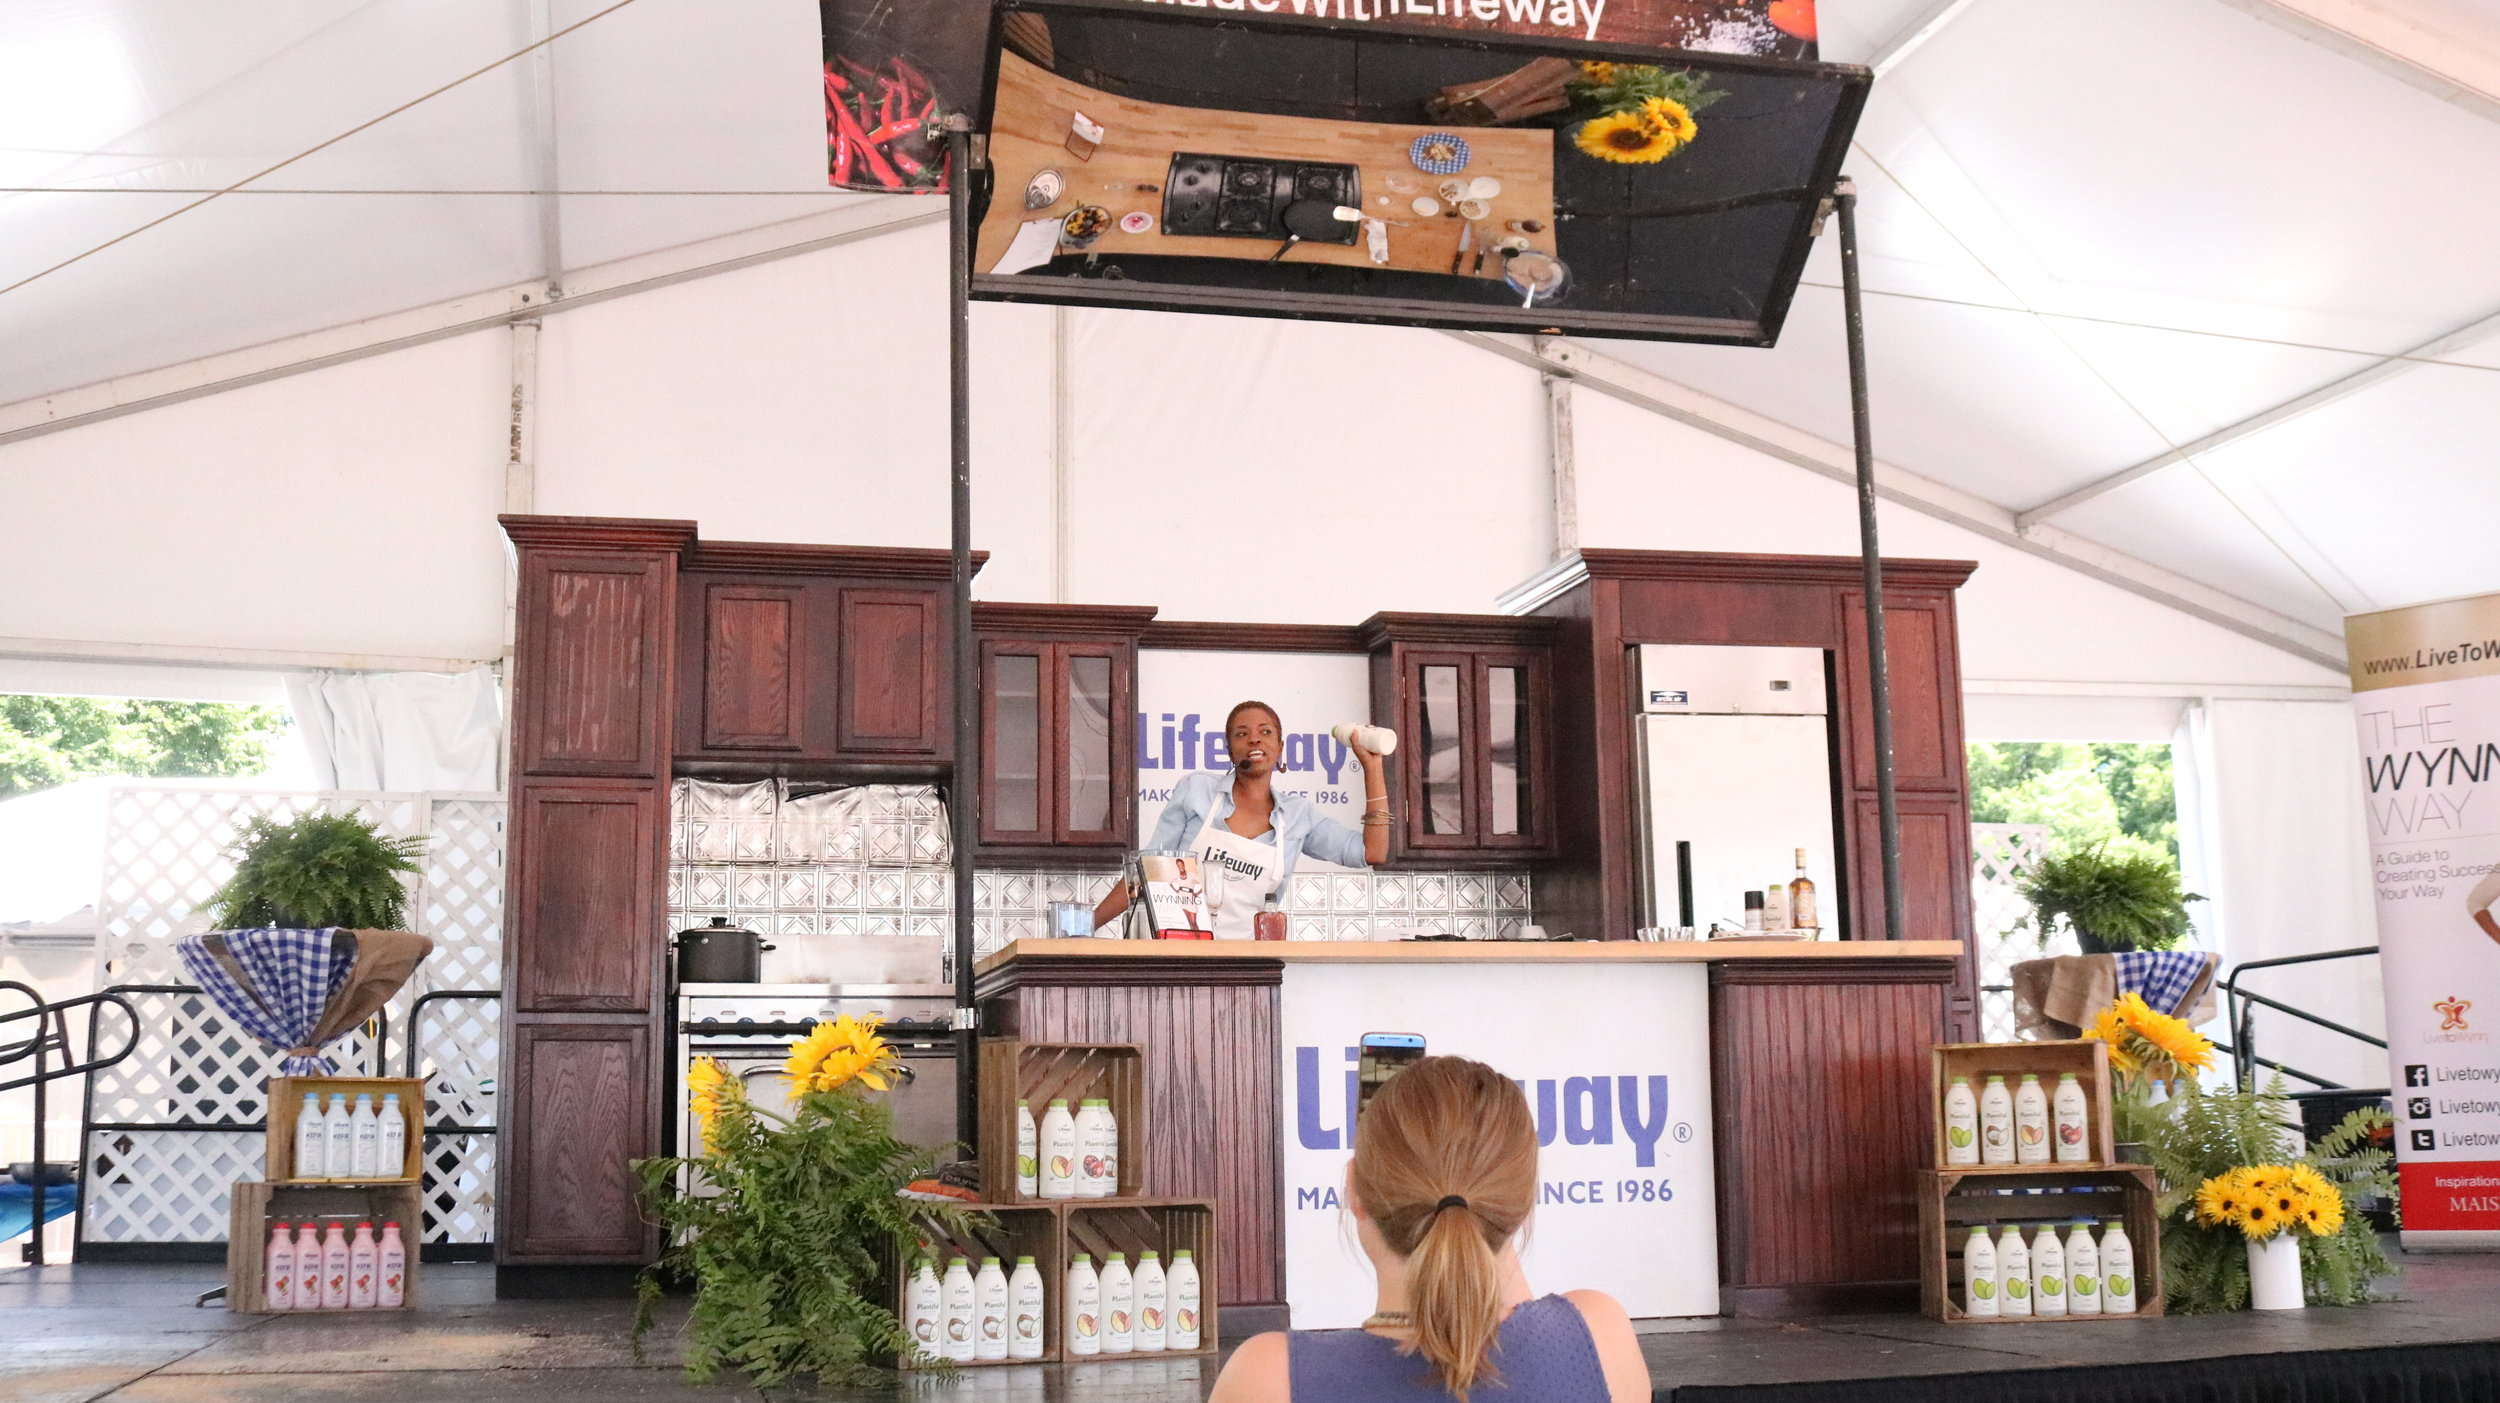 Maisha Wynn (center), lifestyle expert and author, doing a culinary vegan show with Lifeway. Introducing the Pxlantiful product to the audience on June 12, 2019 at the Taste of Chicago. Photo by Estefania Navarrete